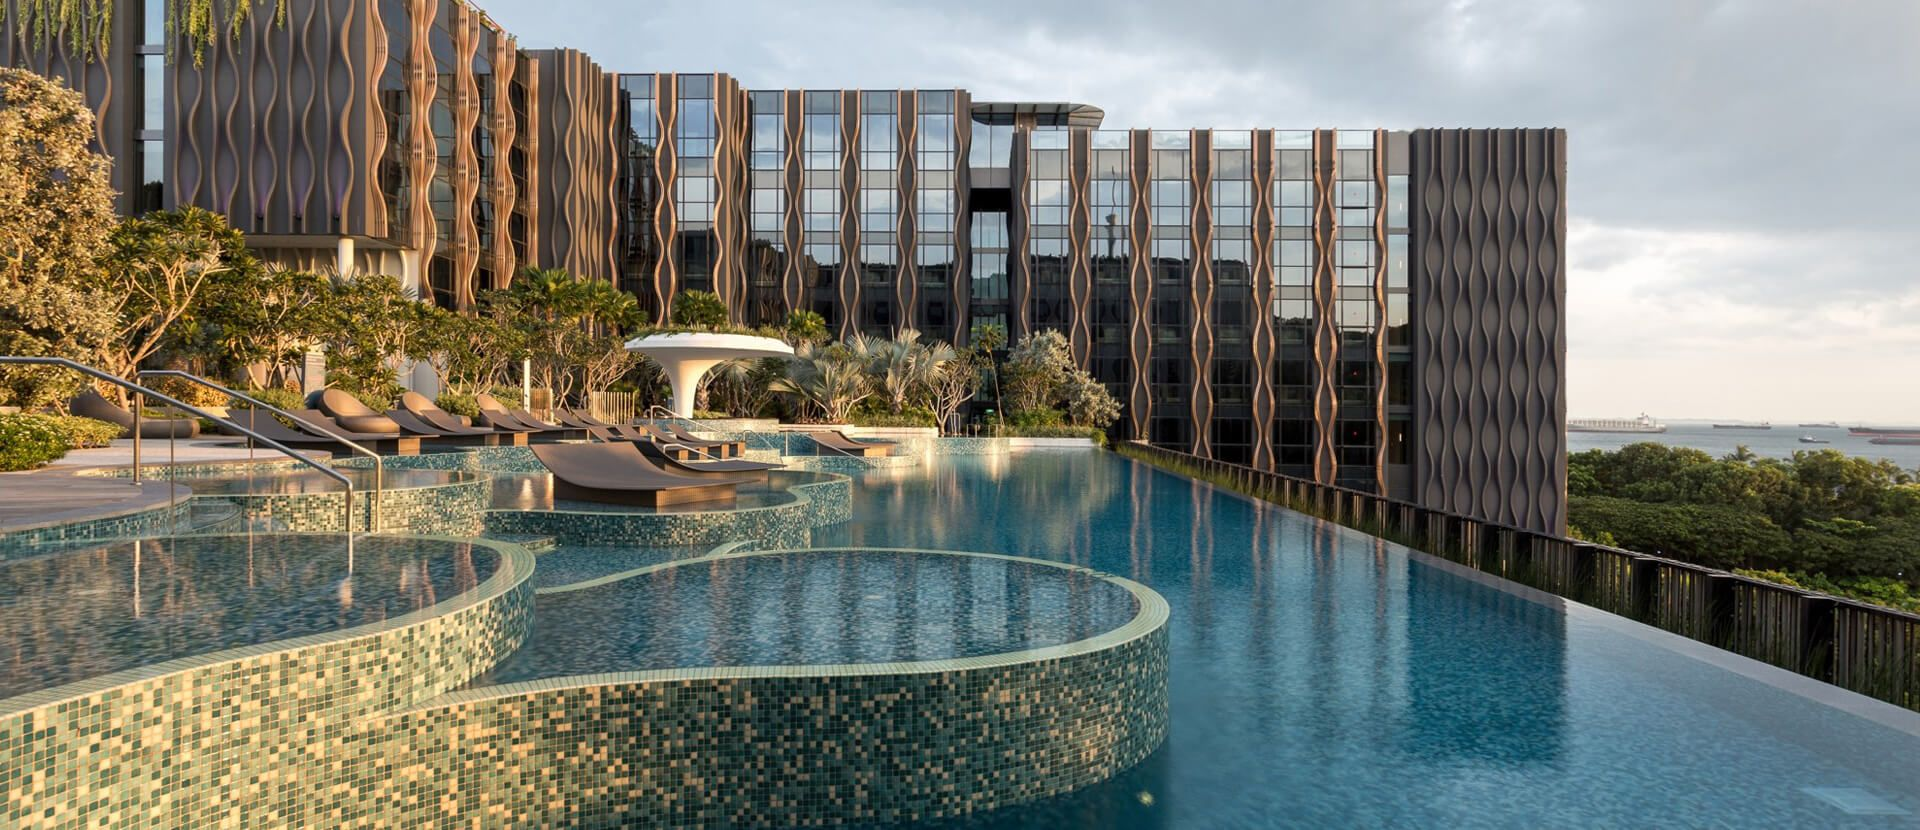 The Outpost Hotel Sentosa